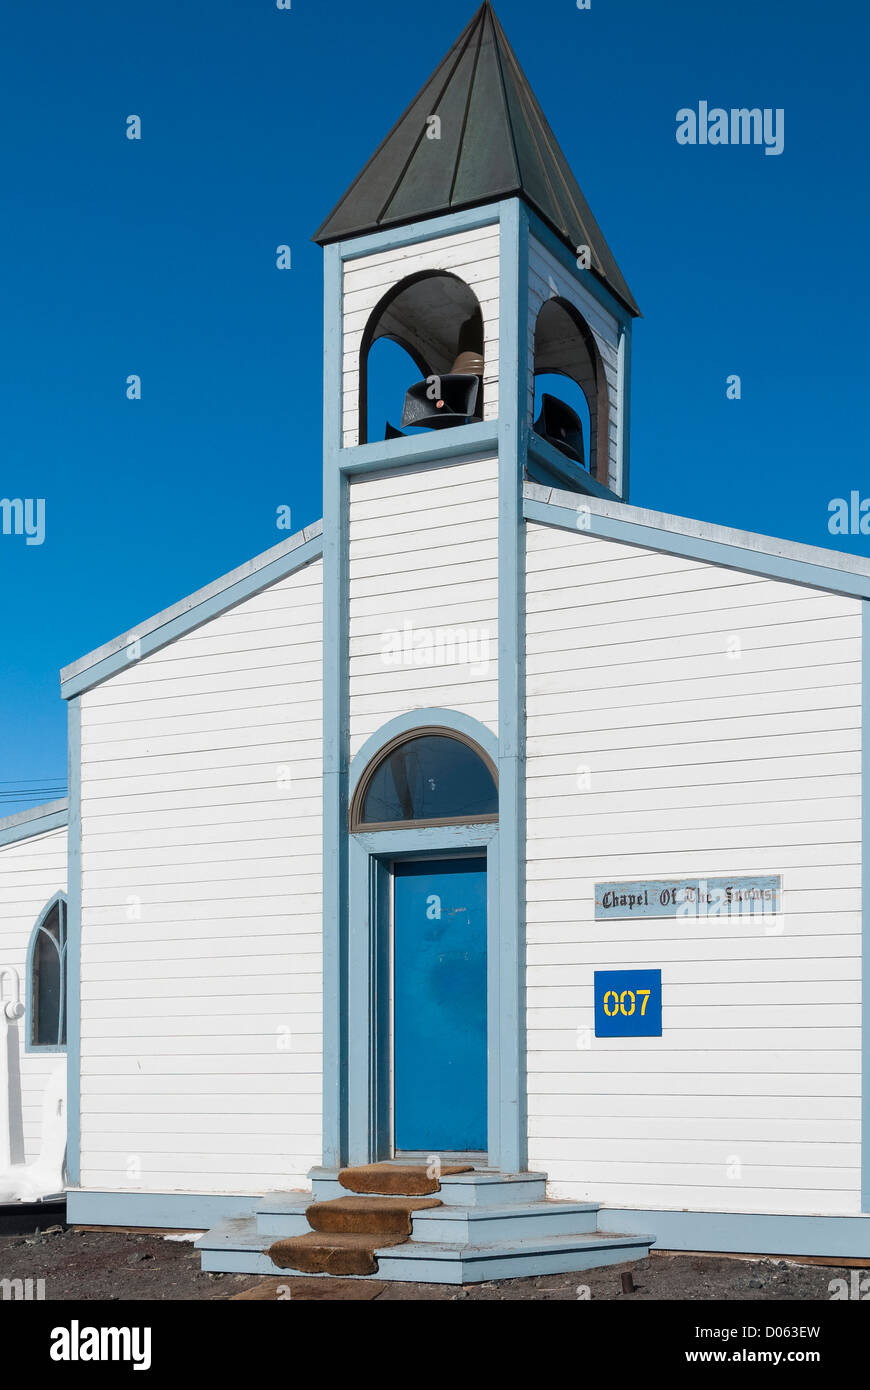 Chapel of the Snows, McMurdo Station, Ross Island, Antarctica. - Stock Image